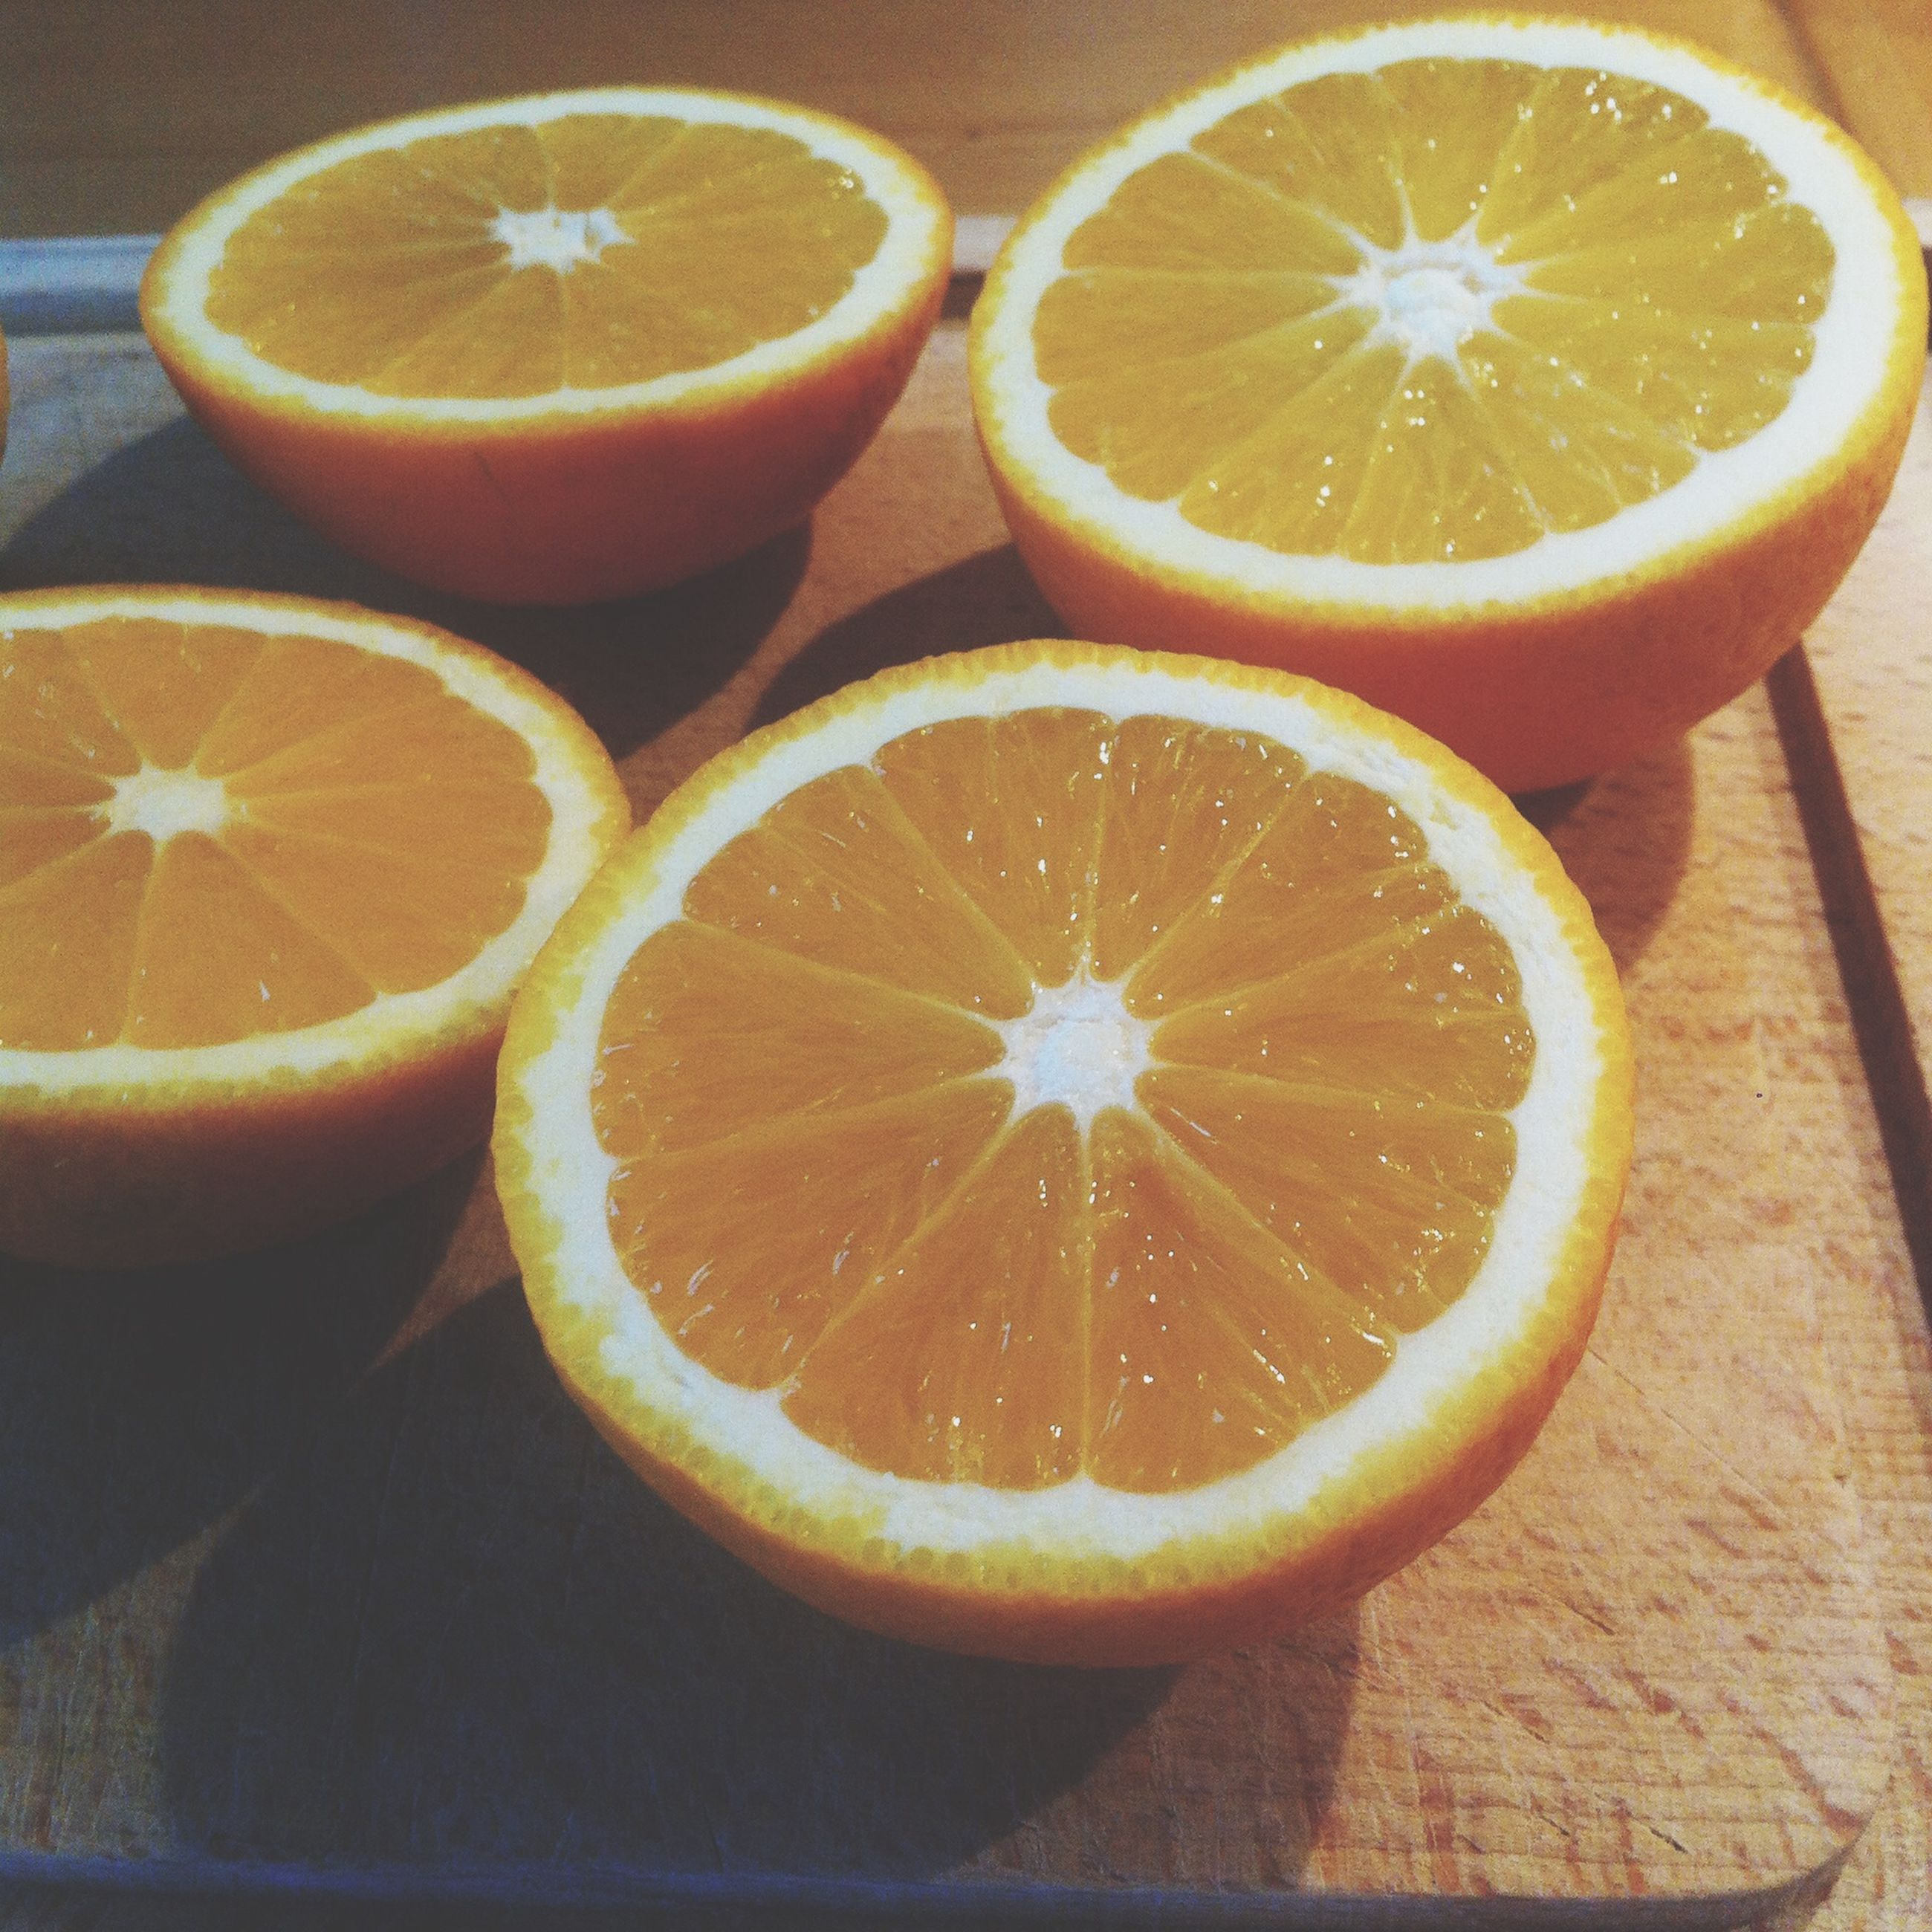 food and drink, food, freshness, healthy eating, fruit, indoors, still life, table, slice, close-up, citrus fruit, cross section, orange - fruit, lemon, high angle view, organic, bowl, yellow, halved, directly above